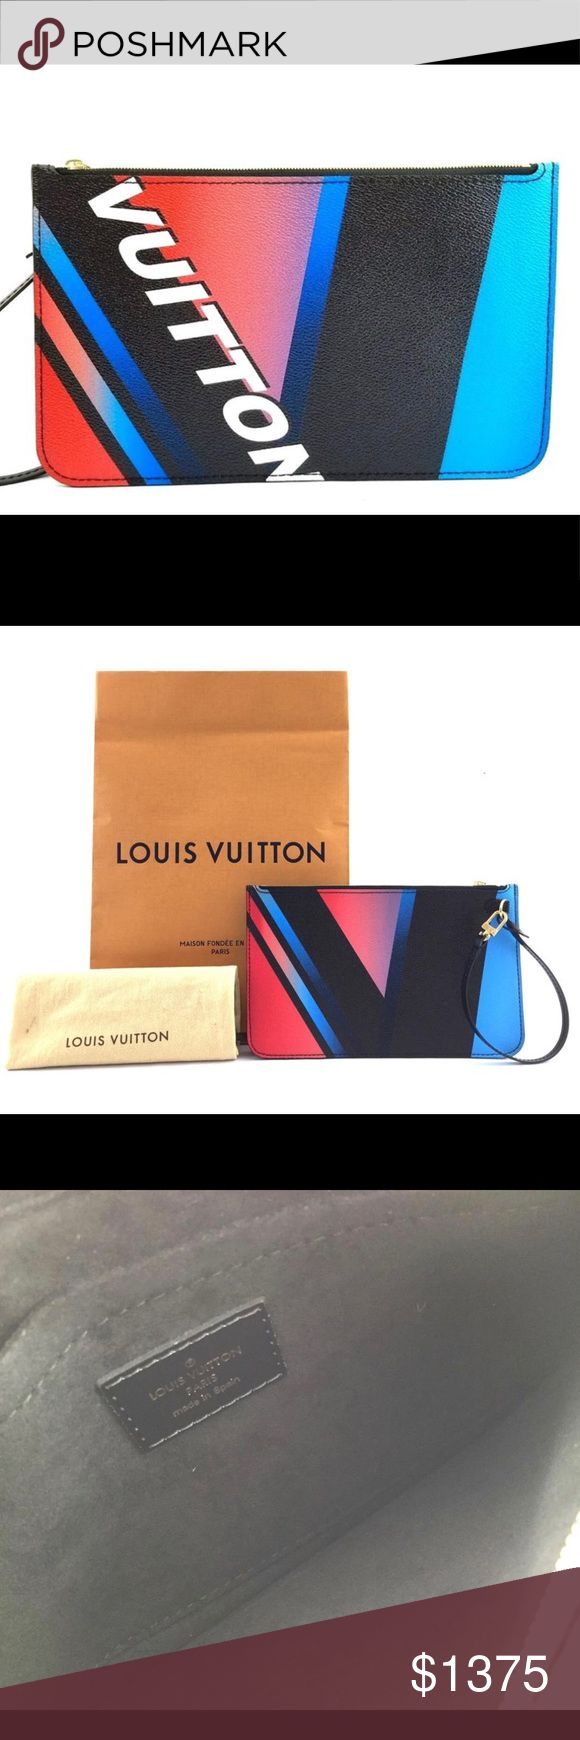 🦄 Rare Louis Vuitton pouchette from the Race 🦄 Rare authentic Louis Vuitton pouchette from the Race collection. Selling the poucheette only. Its great as a casual pochette with jeans as well as with dress. This pochette has a shimmer to it that none of the other Race collection styles had. Measures 9.7 x 6 x .25  inches. I can fit  phone, lipstick, money credit card and and a key inside this bag. New never used.  The interior has one large flat pocket. Comes with dust bag, shopping bag,